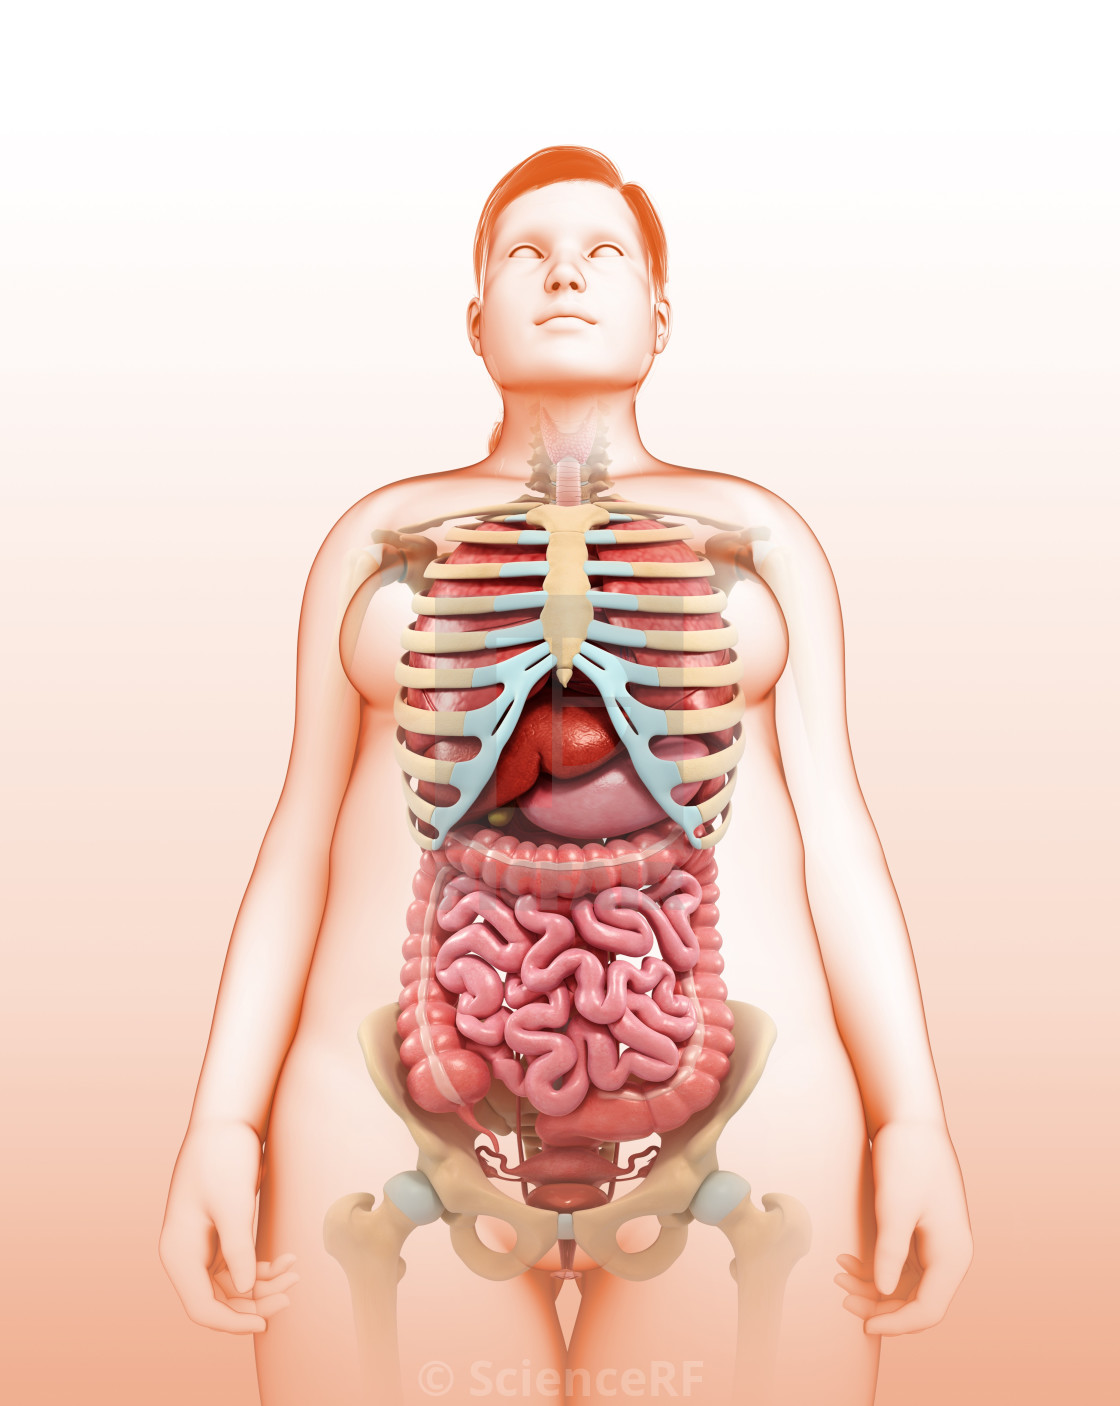 Human Internal Organs Illustration License Download Or Print For